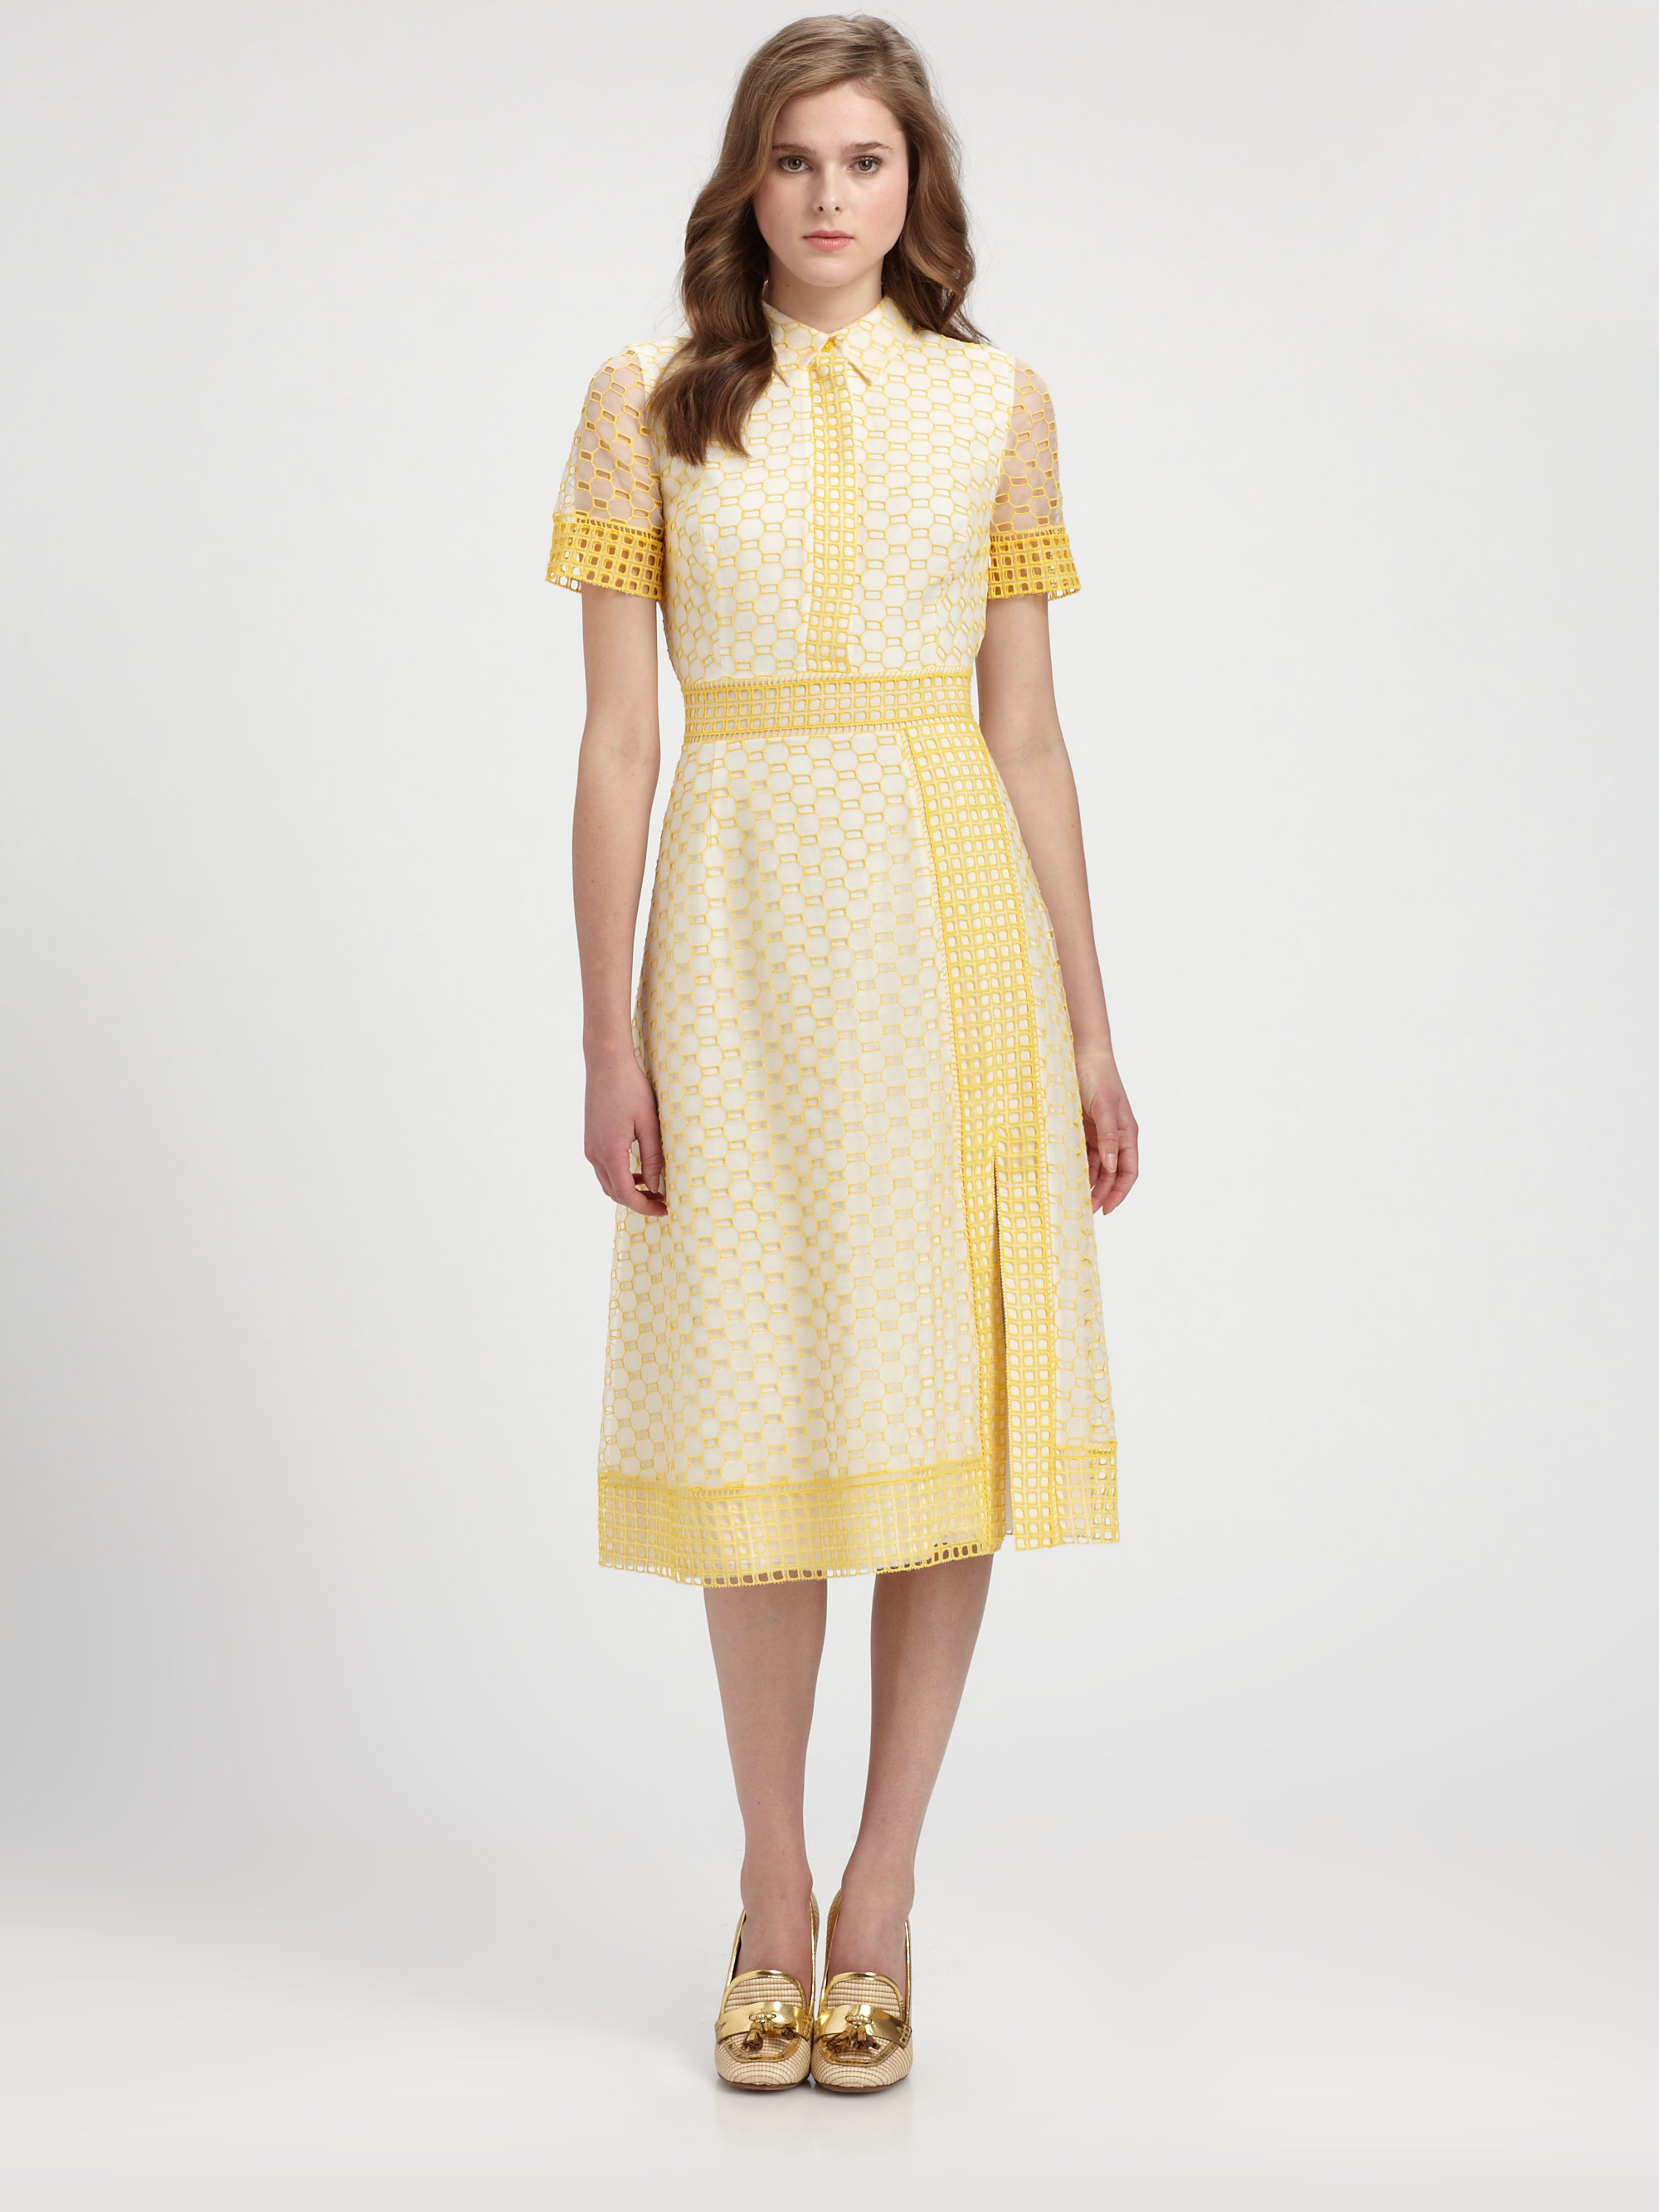 5c209a71c9a6 Lyst - Tory Burch Isidor Dress in Yellow